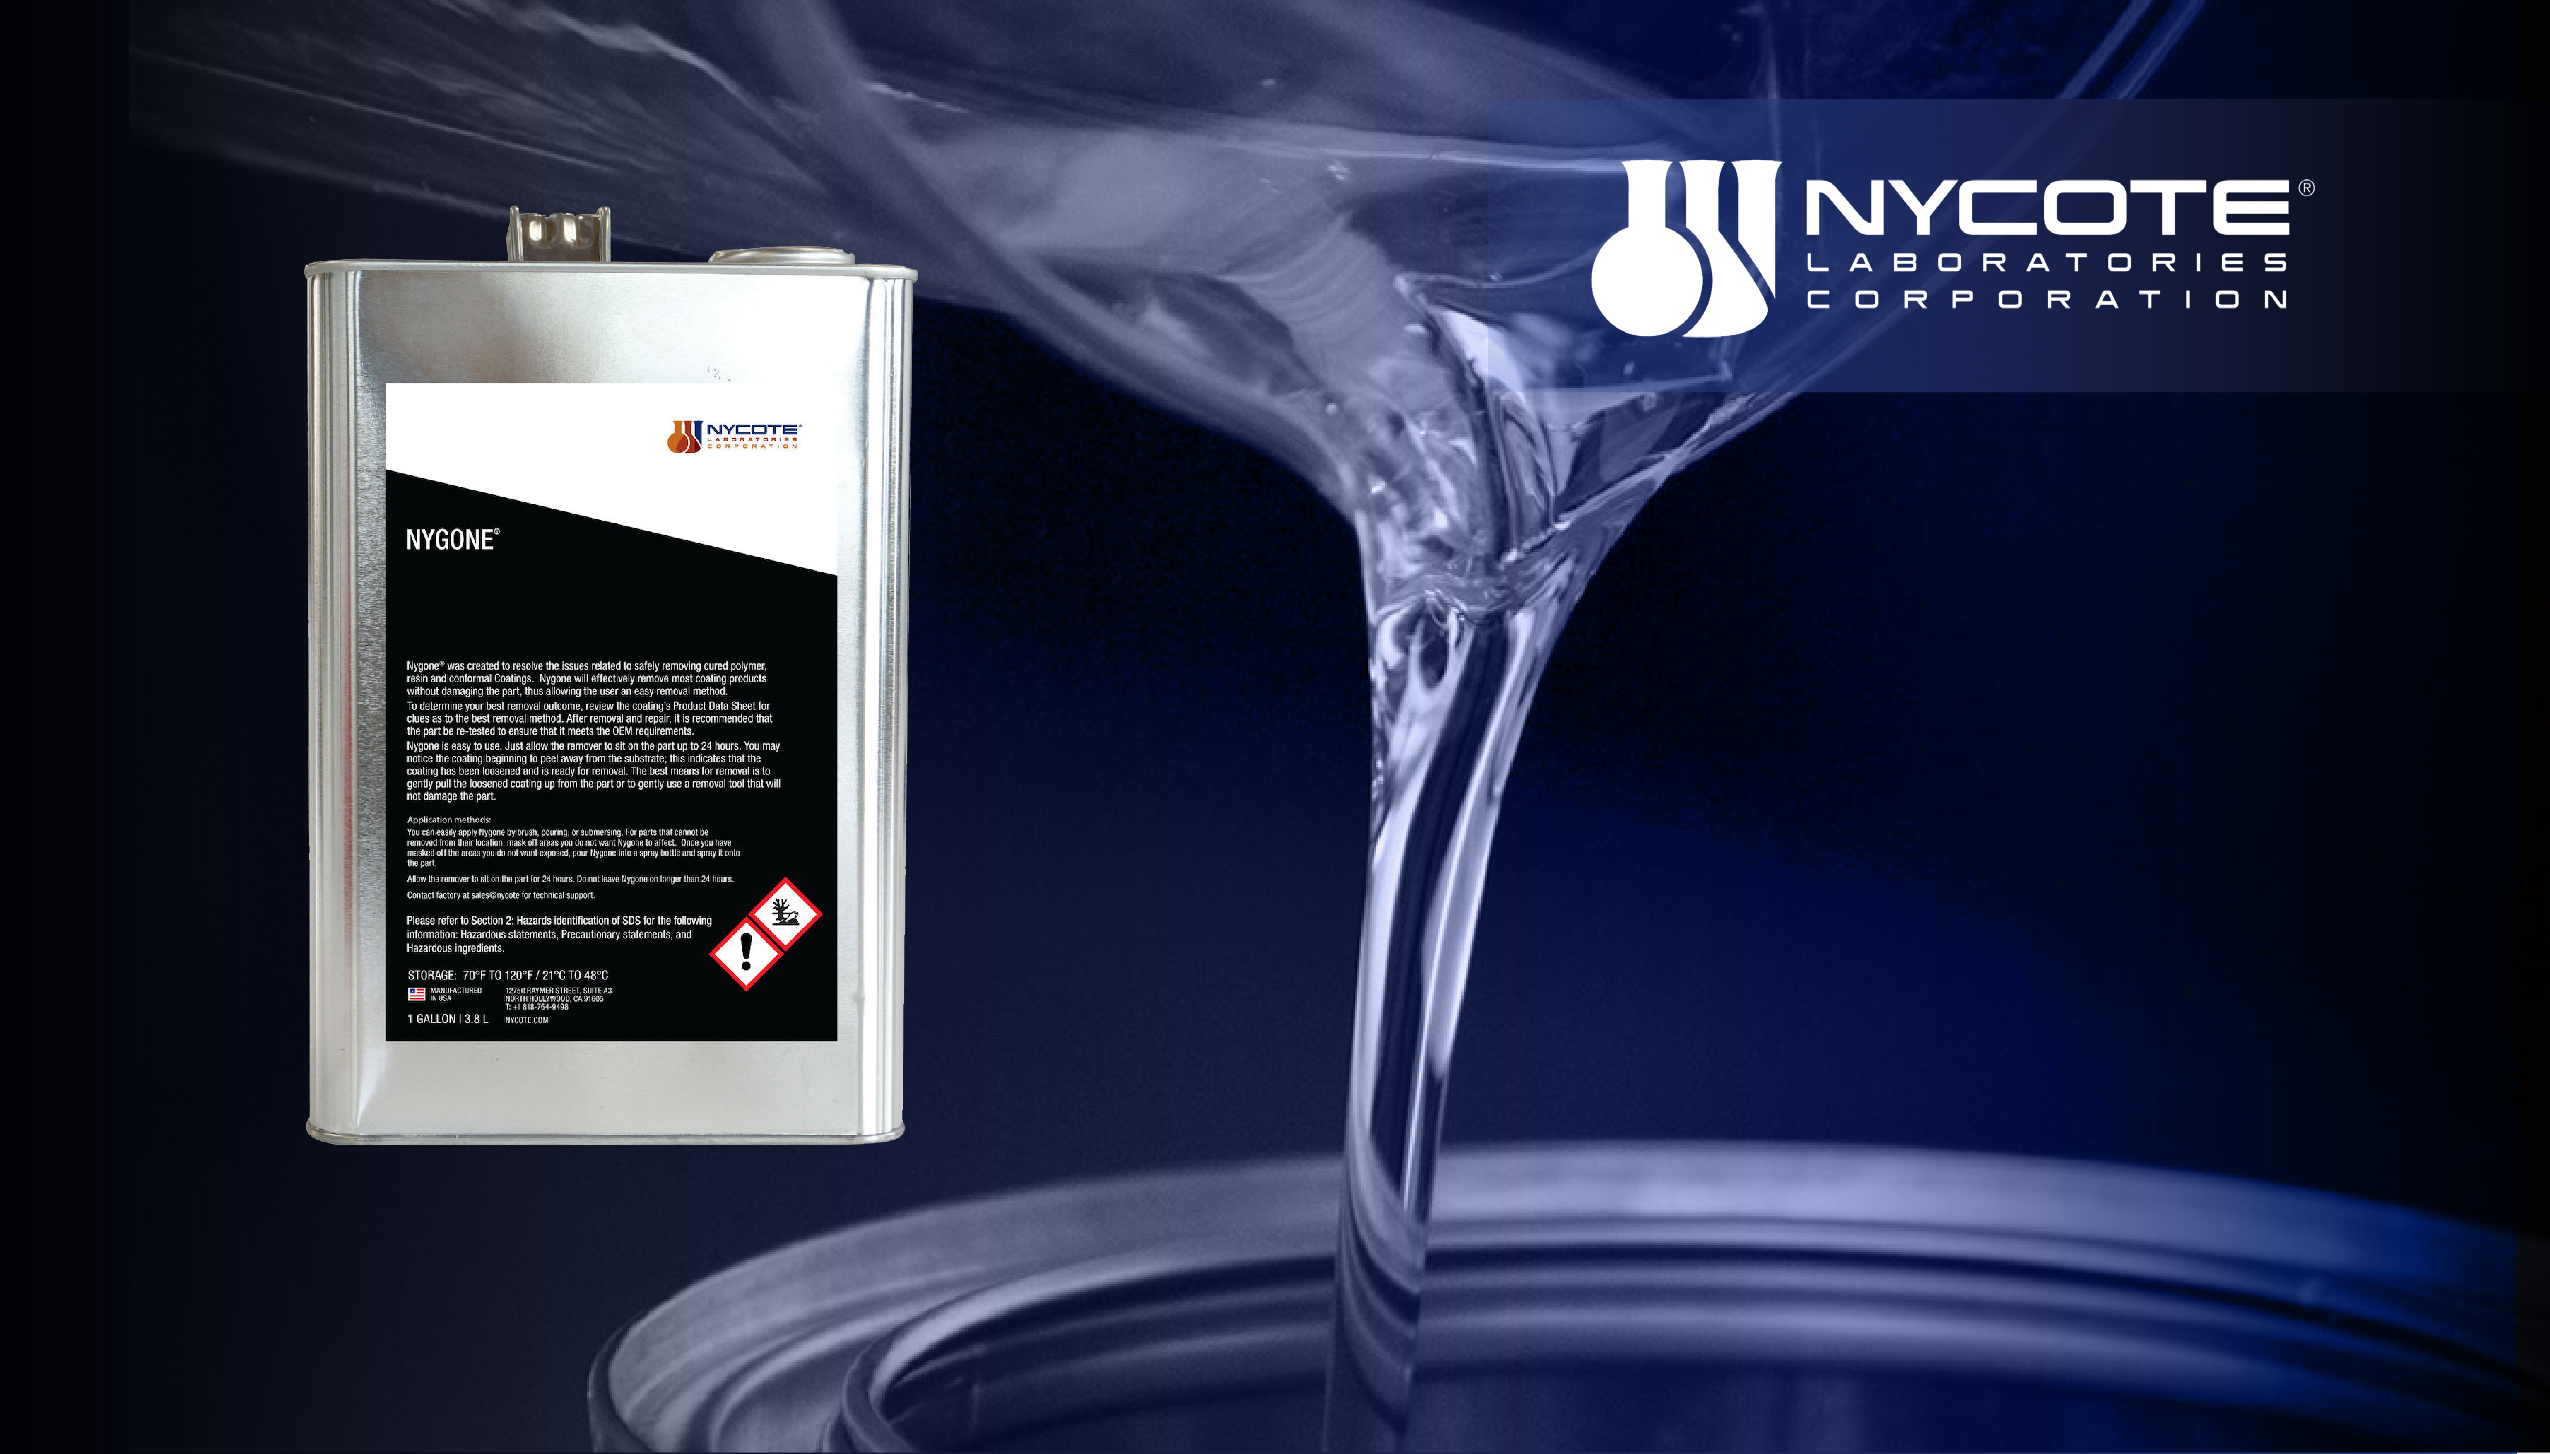 Nygone new nycote product